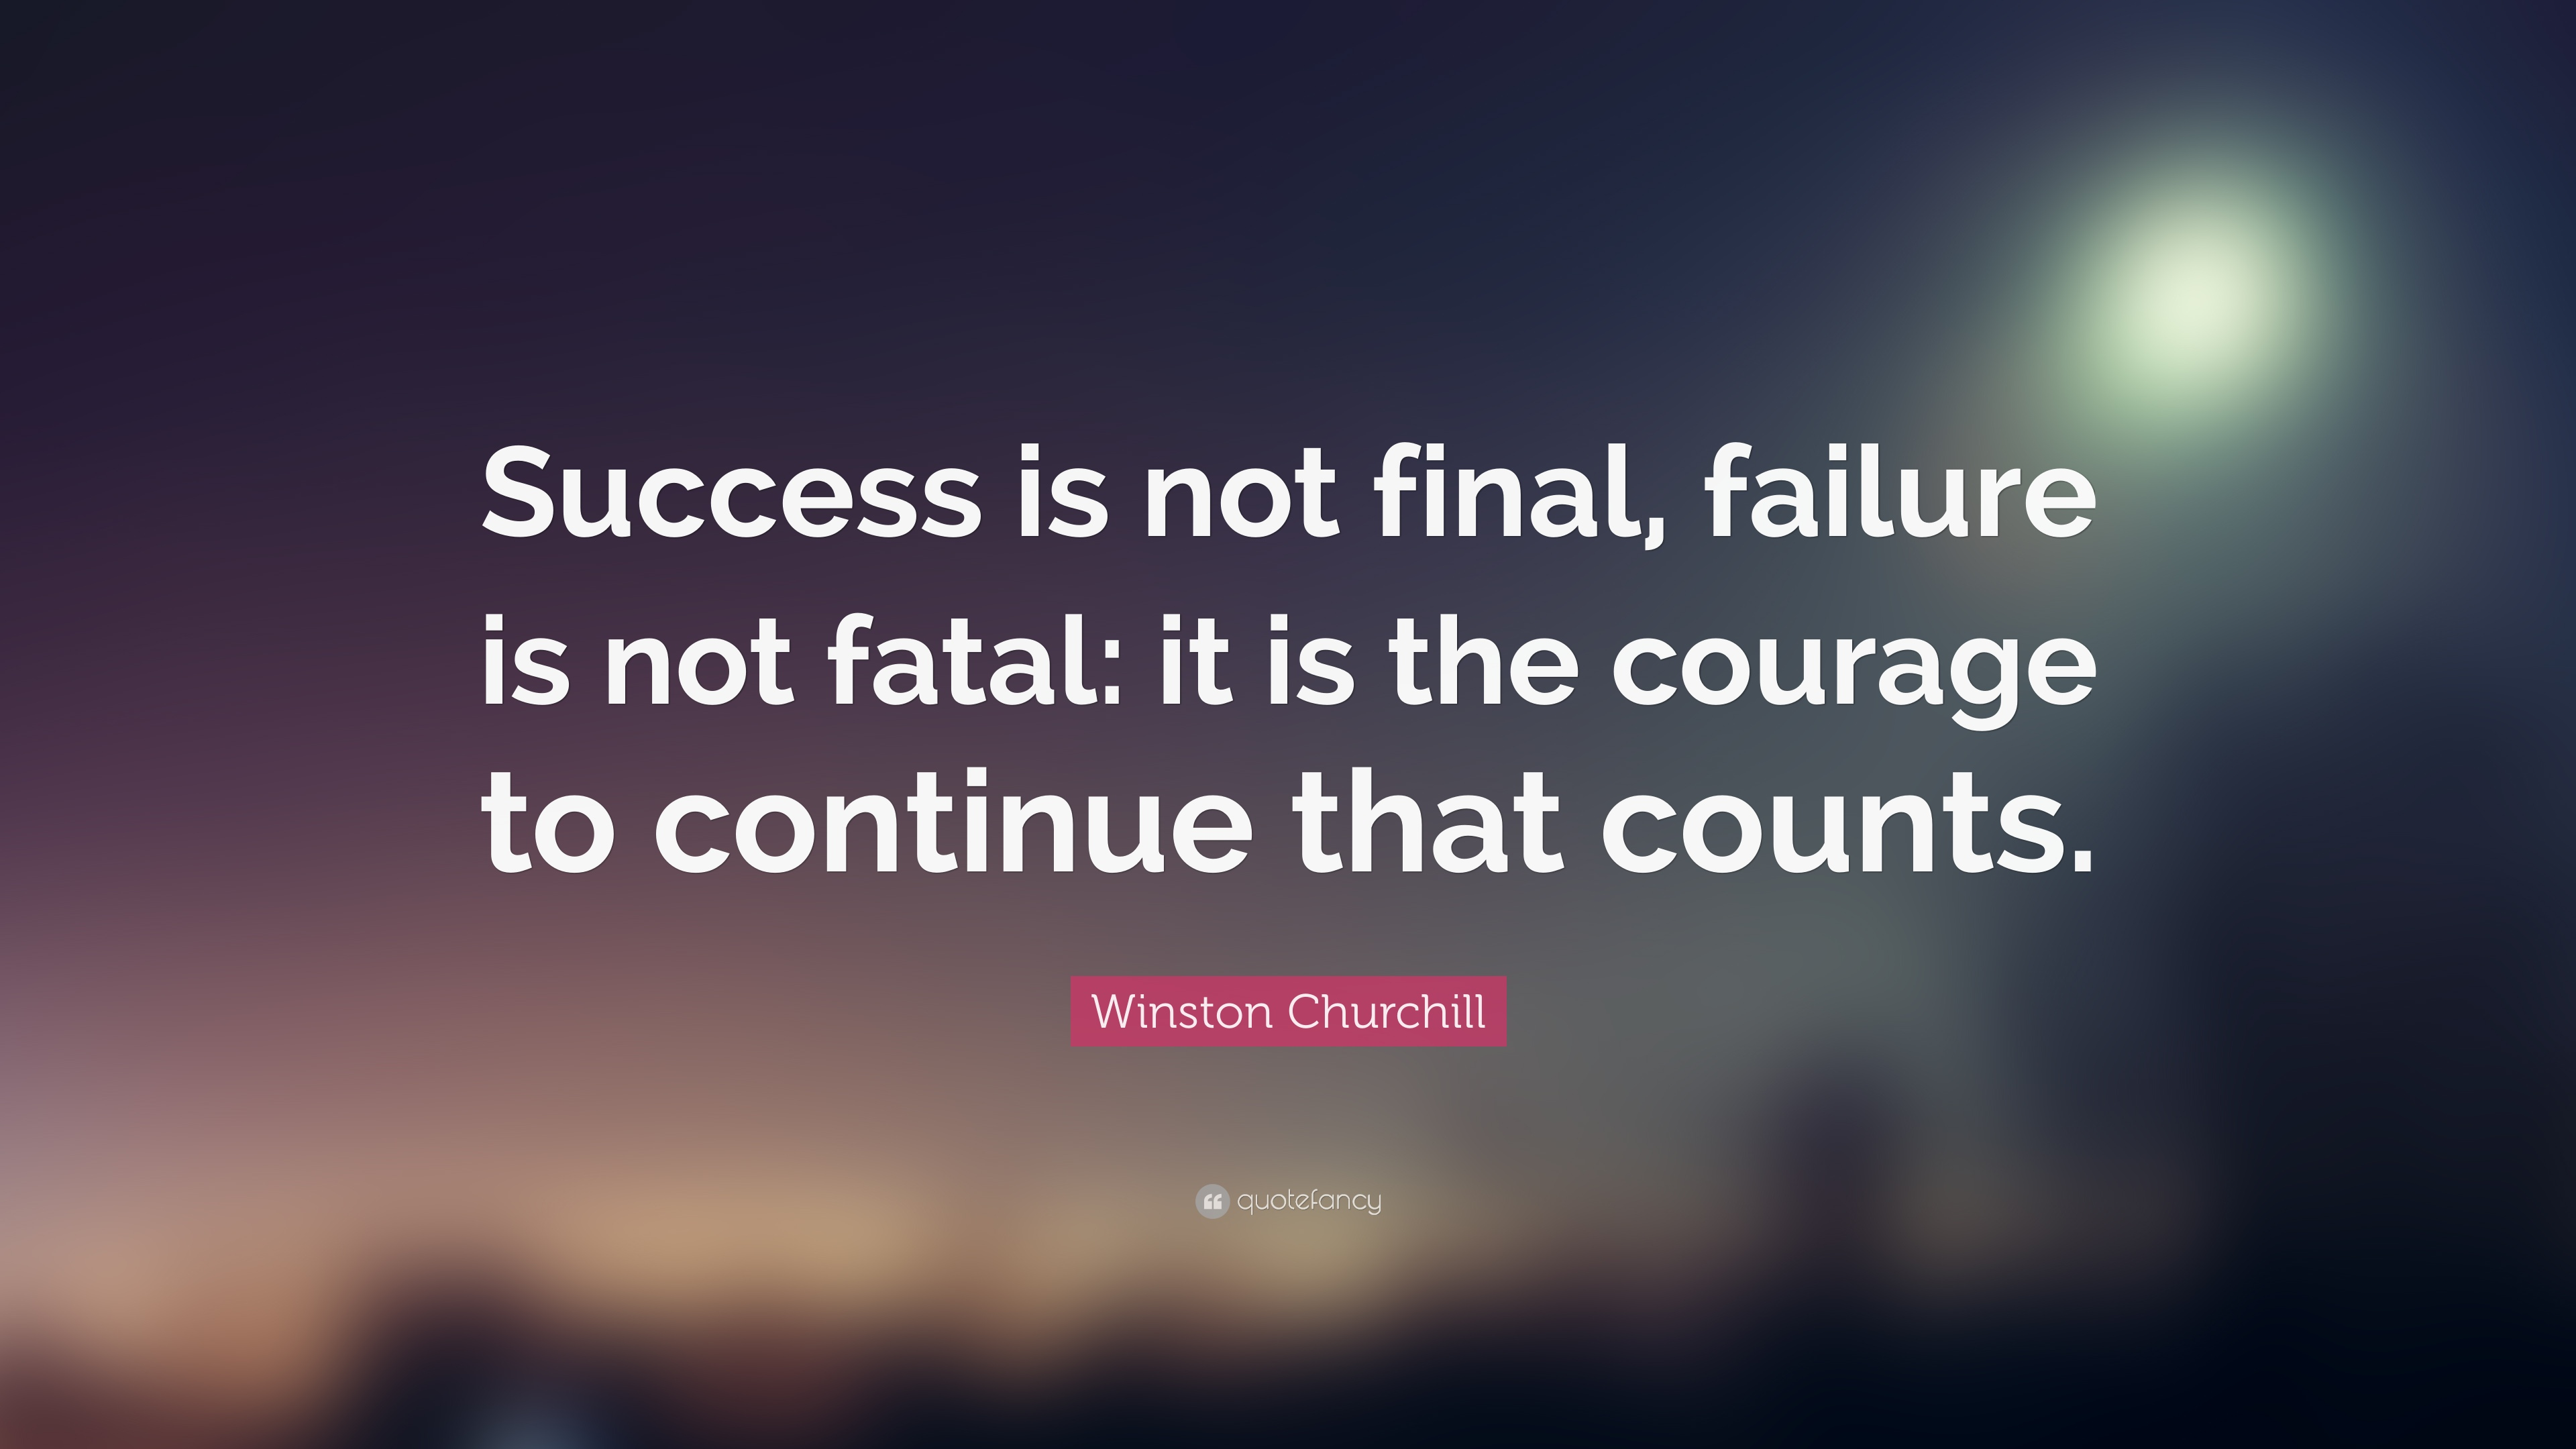 """success is not final failure is not fatal """"success is not final failure is not fatal: it is the courage to continue that counts"""" -winston churchill."""